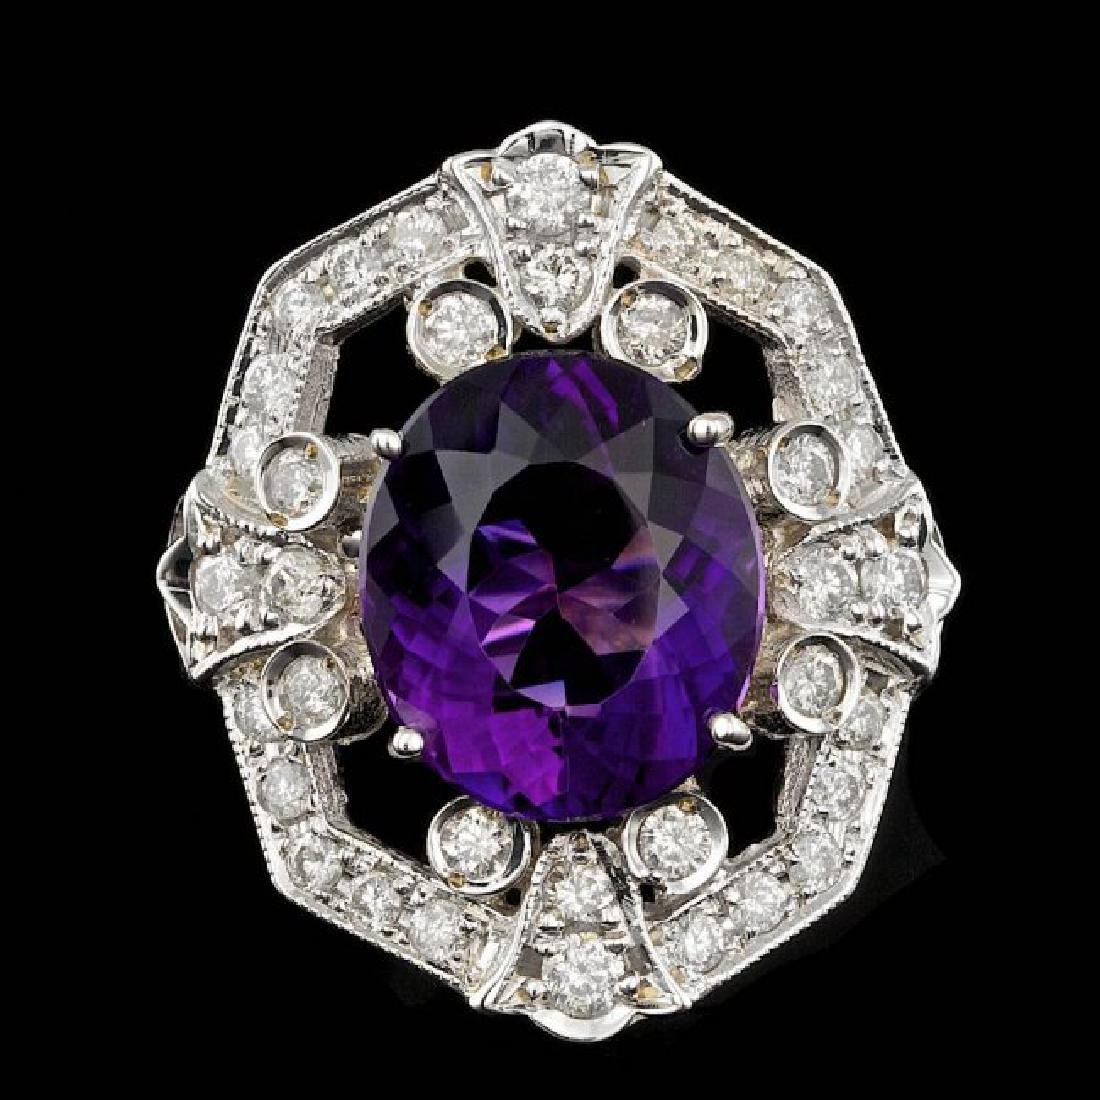 14k Gold 7.50ct Amethyst 2.60ct Diamond Ring - 2